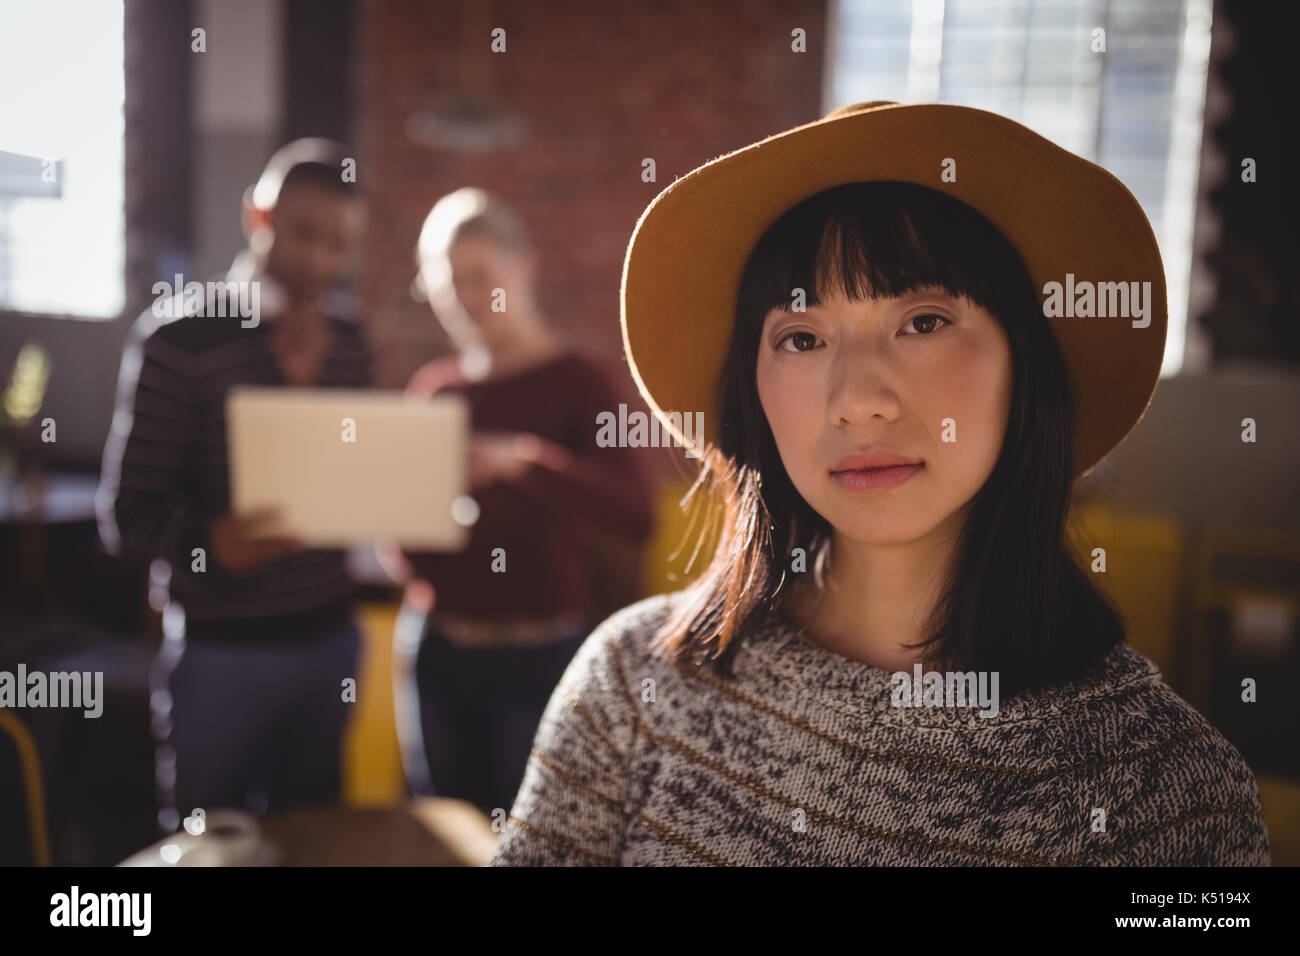 Portrait of young woman wearing hat debout contre des collègues in coffee shop Photo Stock